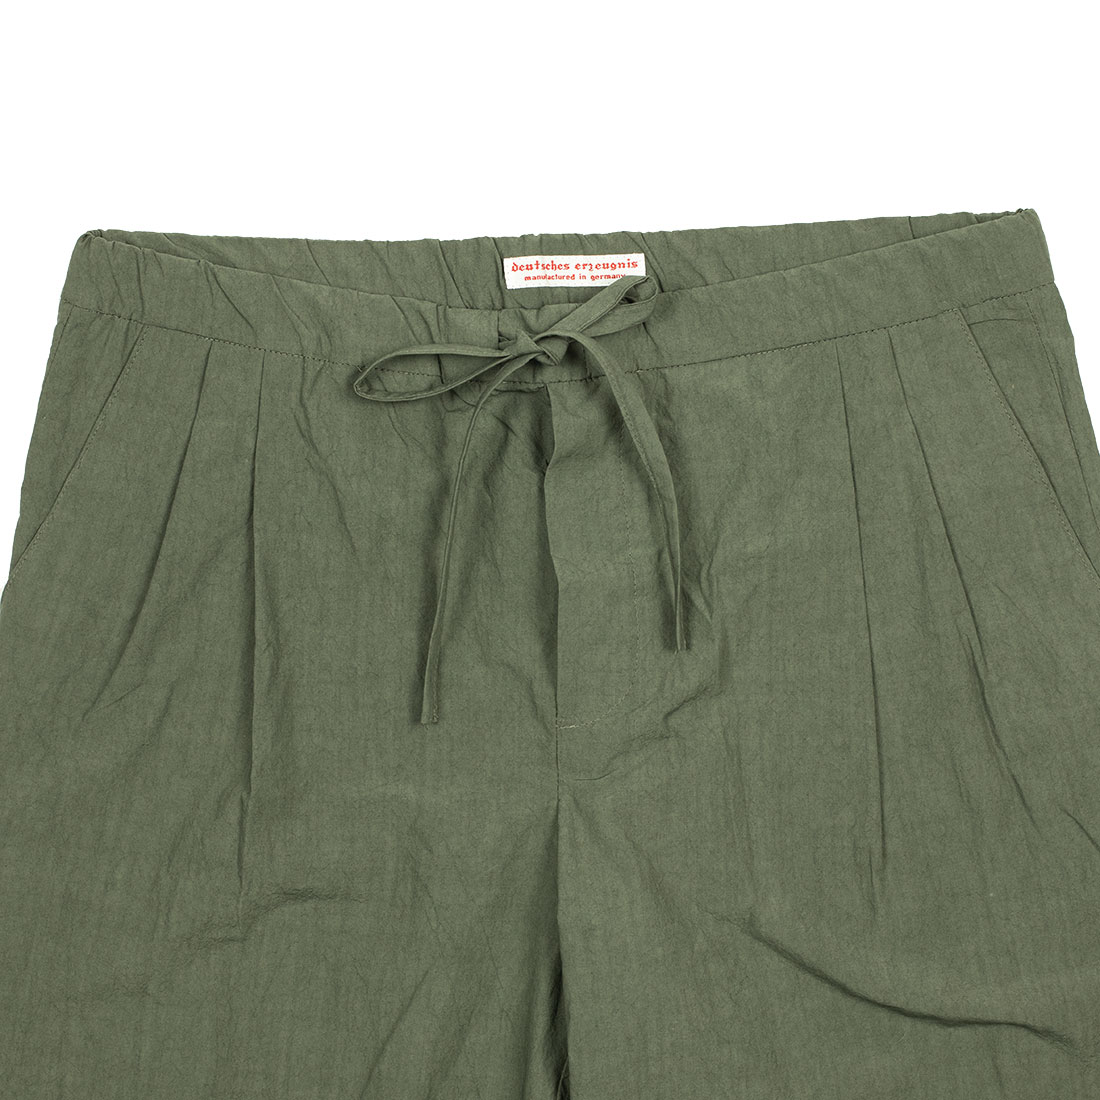 Frank Leder Spring Summer 2021 SS21 Made in Germany lightweight drawstring pleated trousers (6).jpg